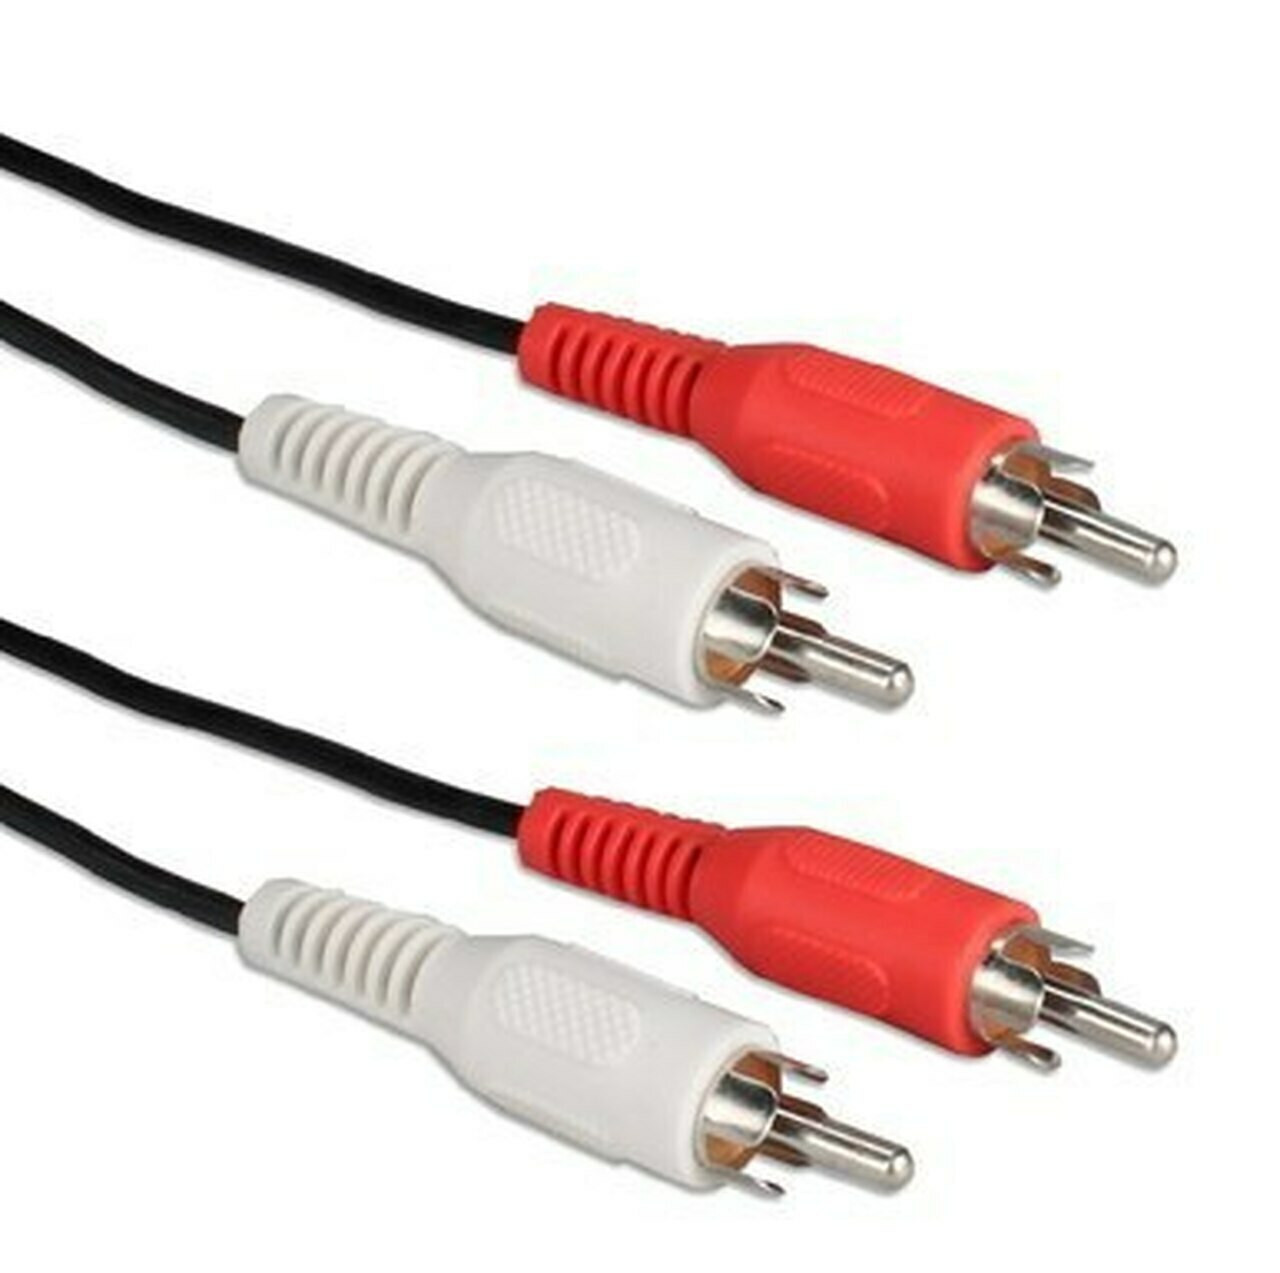 2 RCA MALE TO 2 RCA MALE AUDIO CABLE